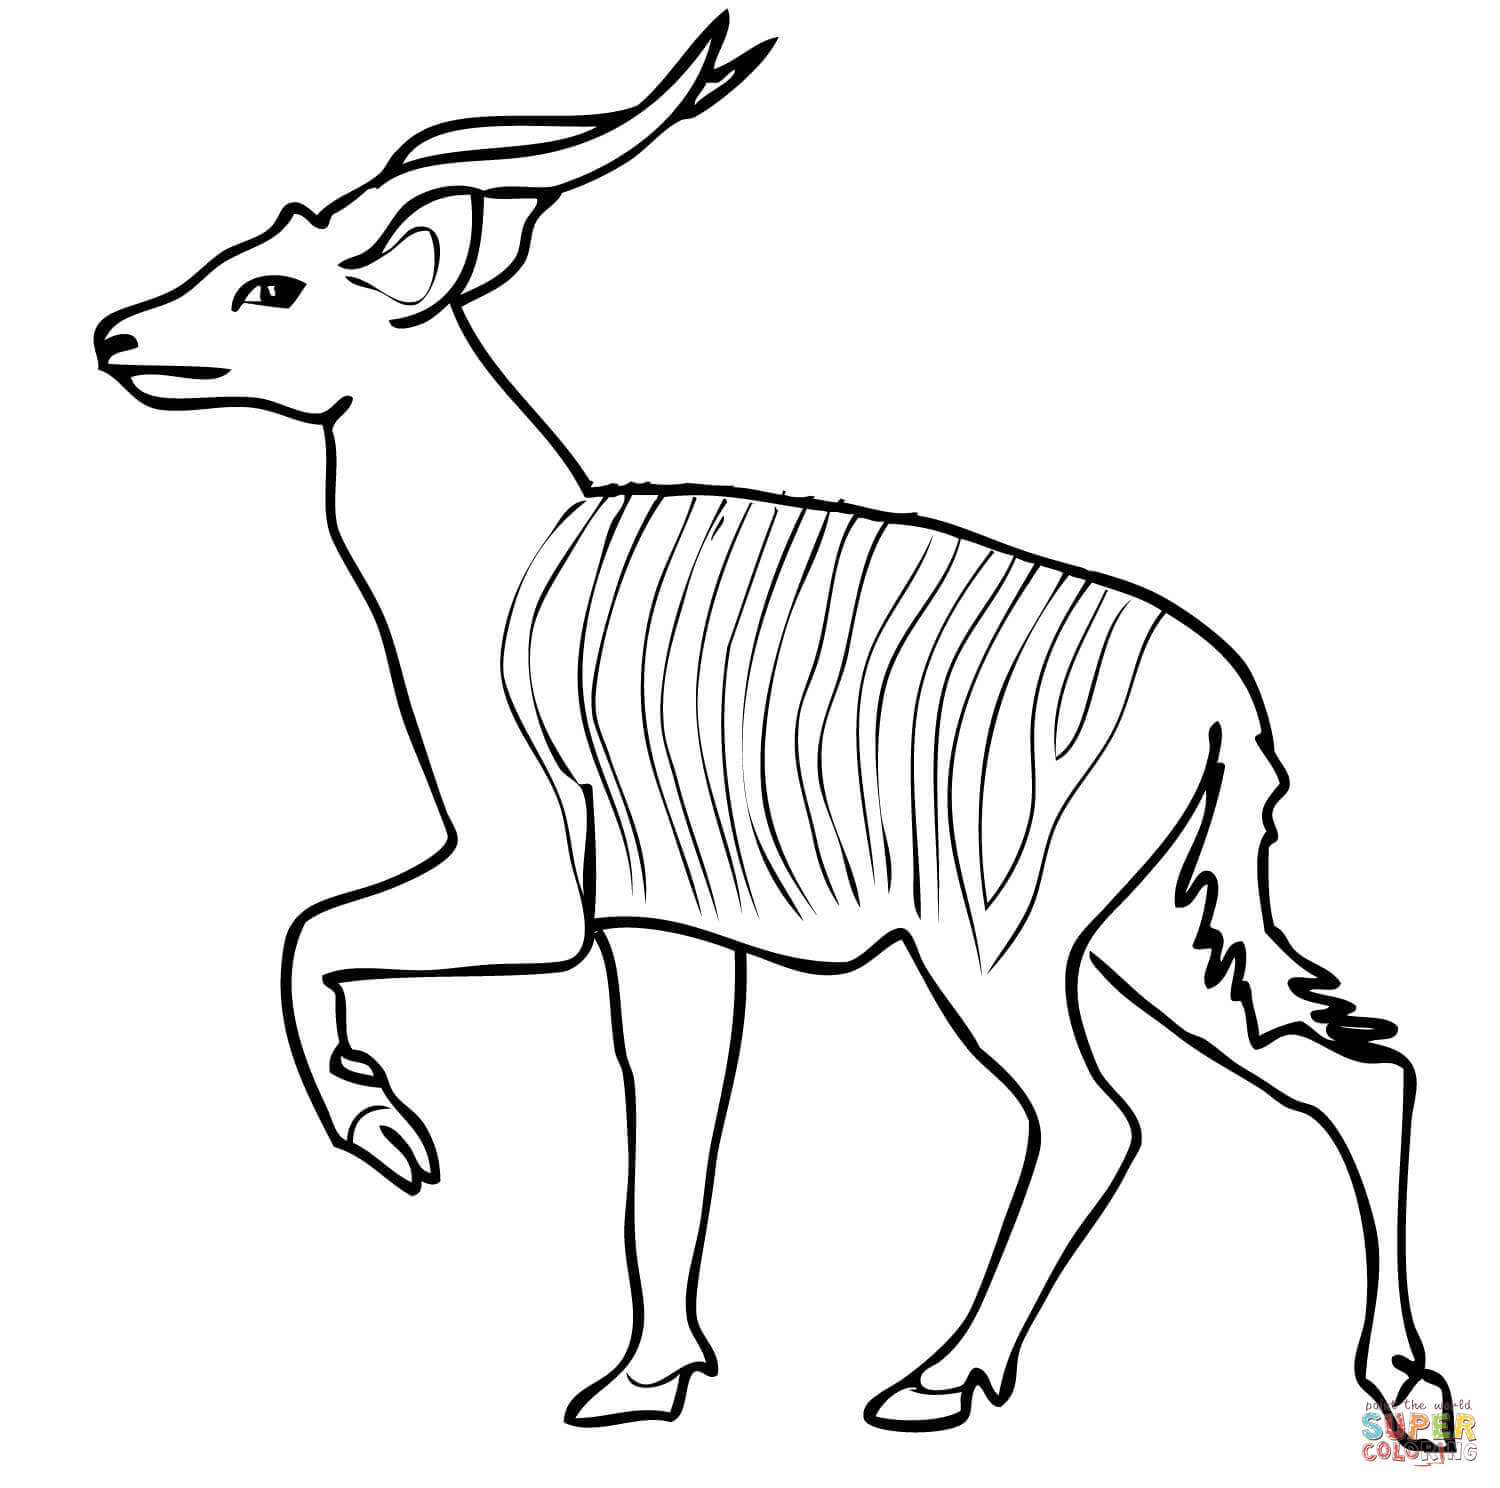 1500x1488 African Forest Antelope Bongo Coloring Page Free Printable